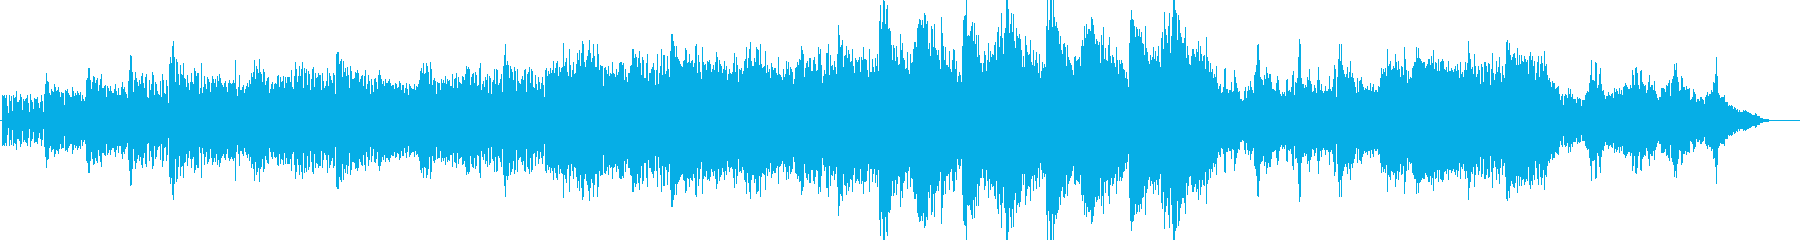 Songs you want to hear at Christmas's reproduced waveform